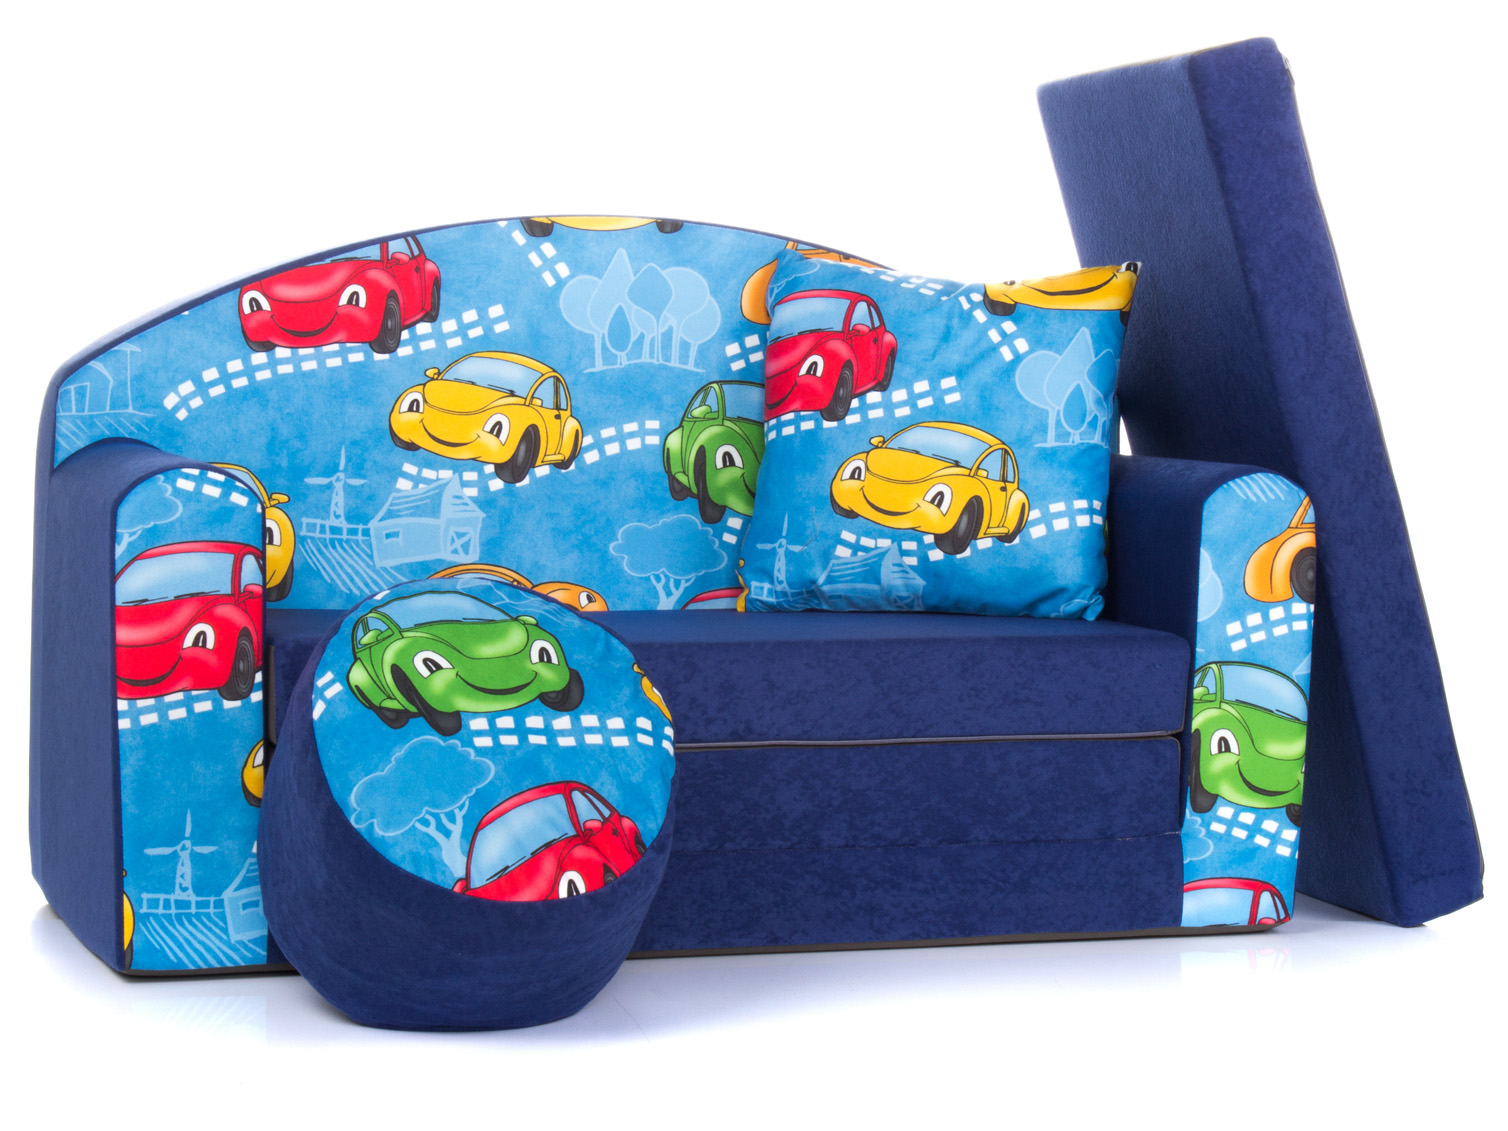 Amazing Details About Childrens Sofa Foam Bed Kids Sofa Pouffe Pillow Playing Sofa Toy Cars 1Sn Gmtry Best Dining Table And Chair Ideas Images Gmtryco